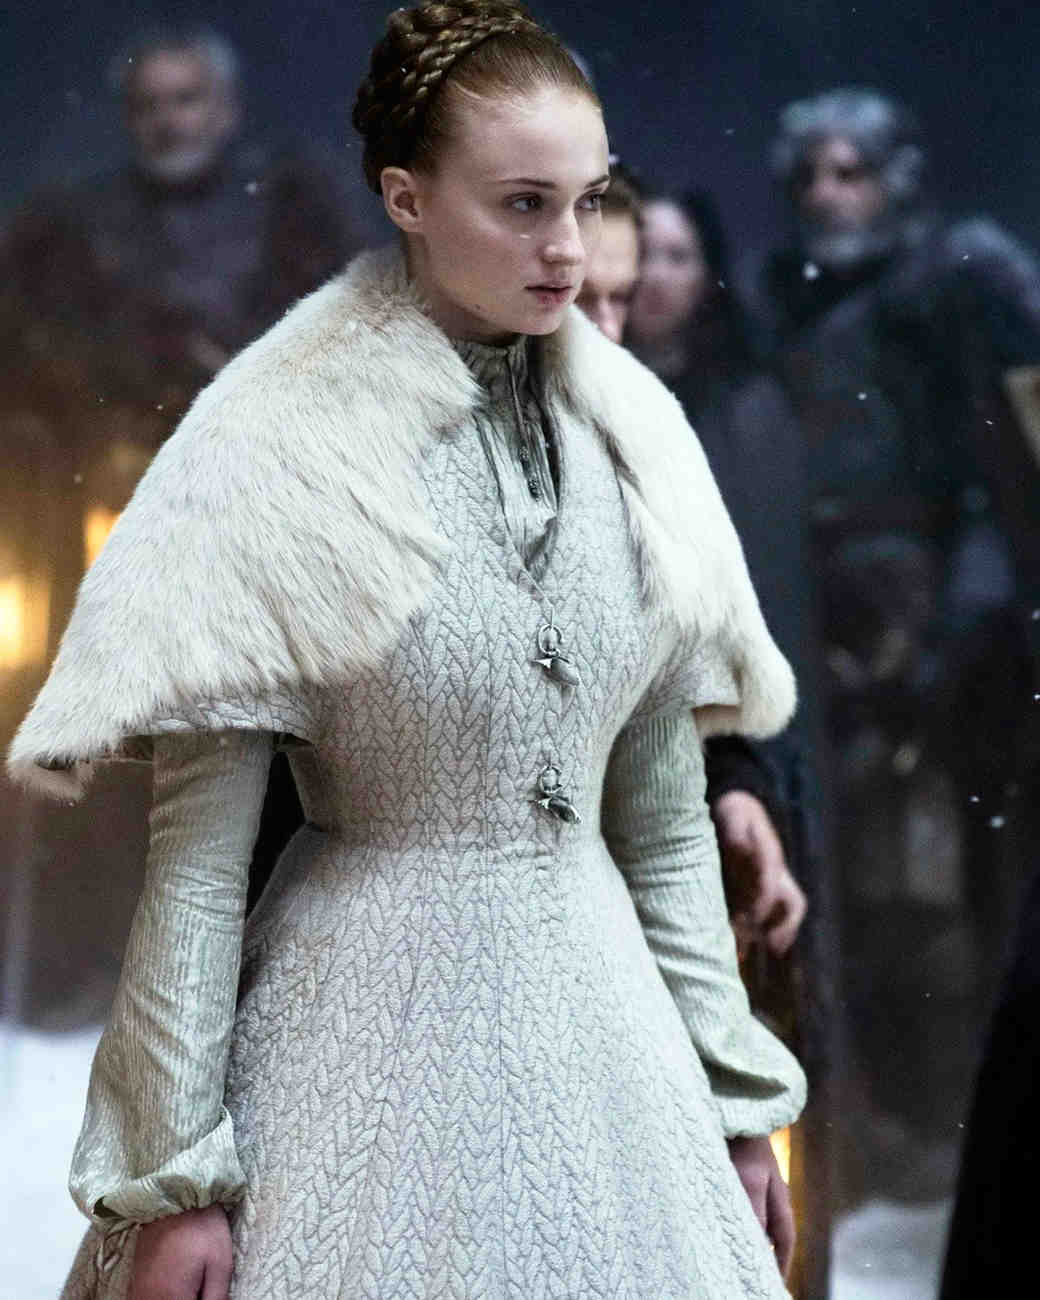 tv-wedding-dresses-game-of-thrones-sansa-stark-1115.jpg